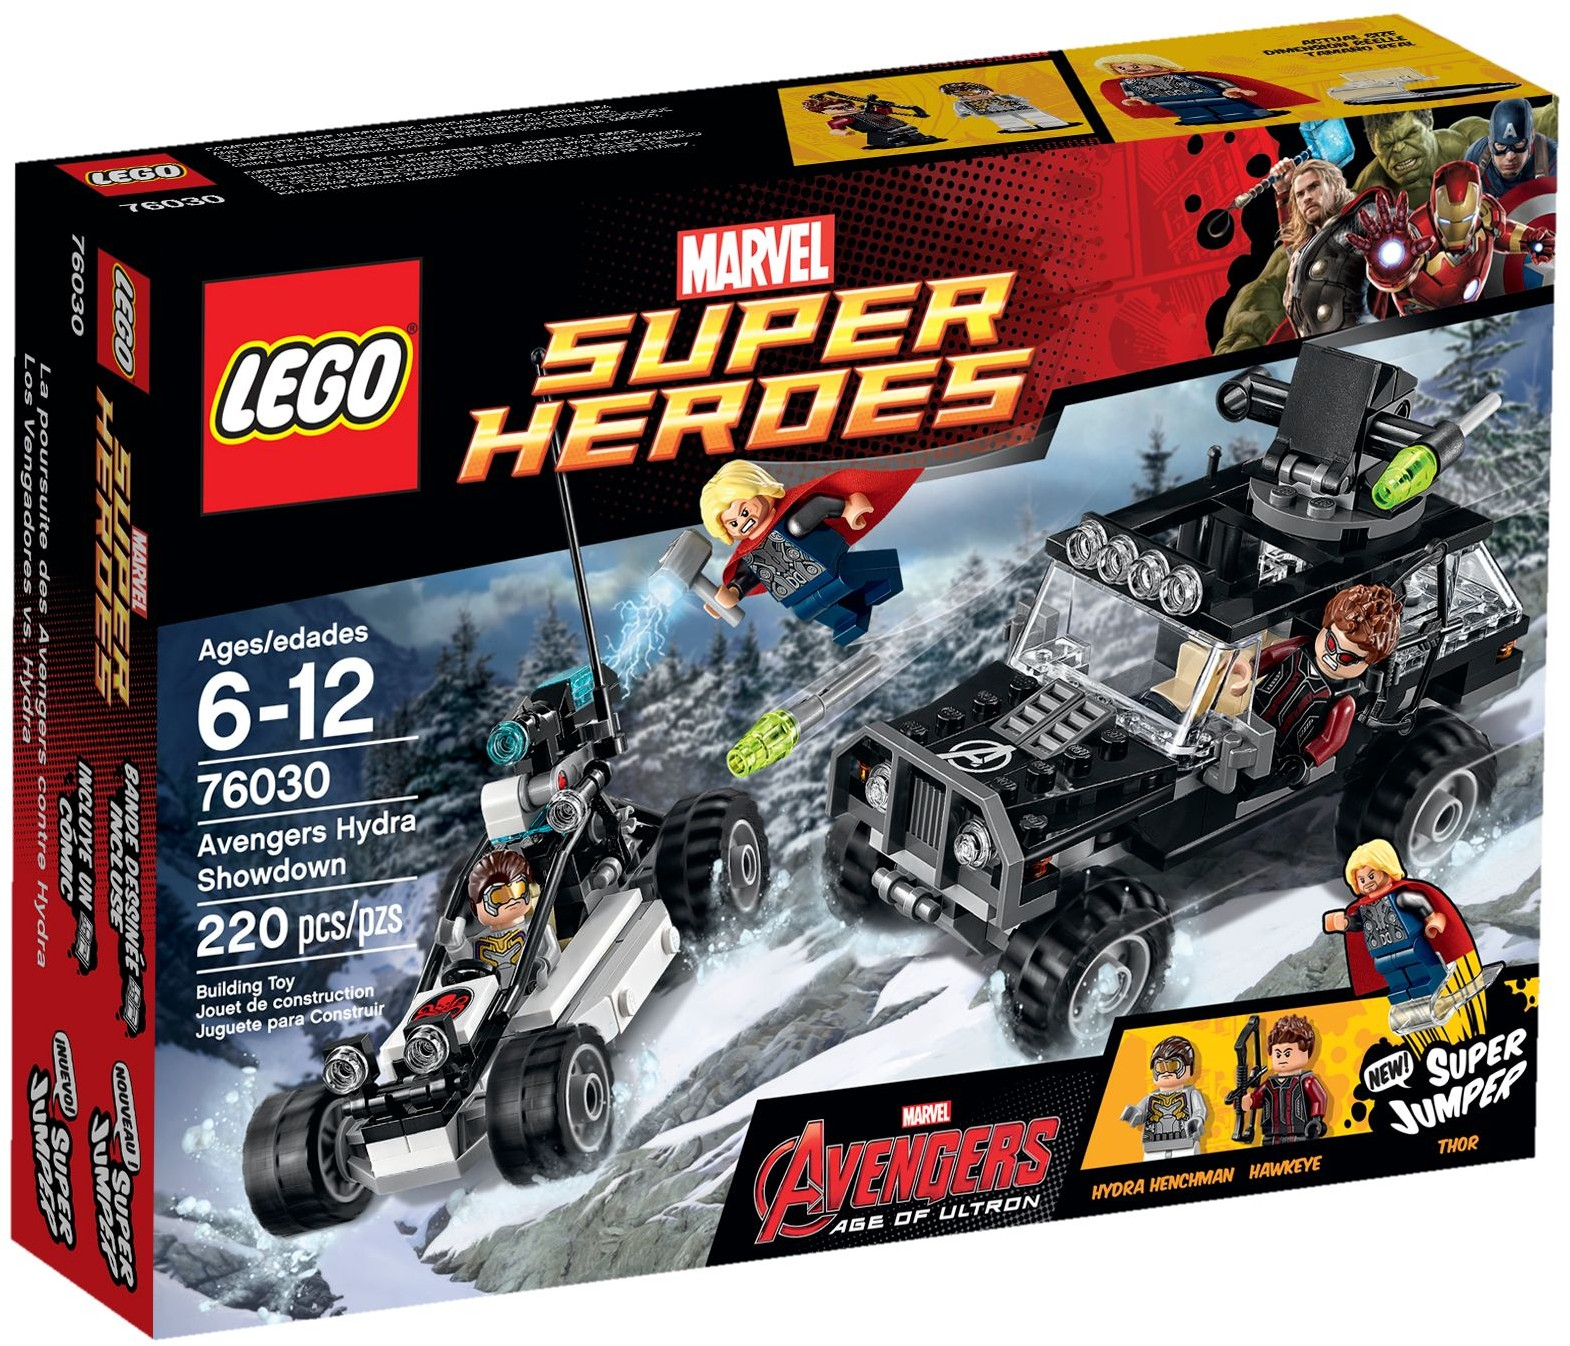 LEGO 76030 - Super Heroes - Avengers Hydra Showdown